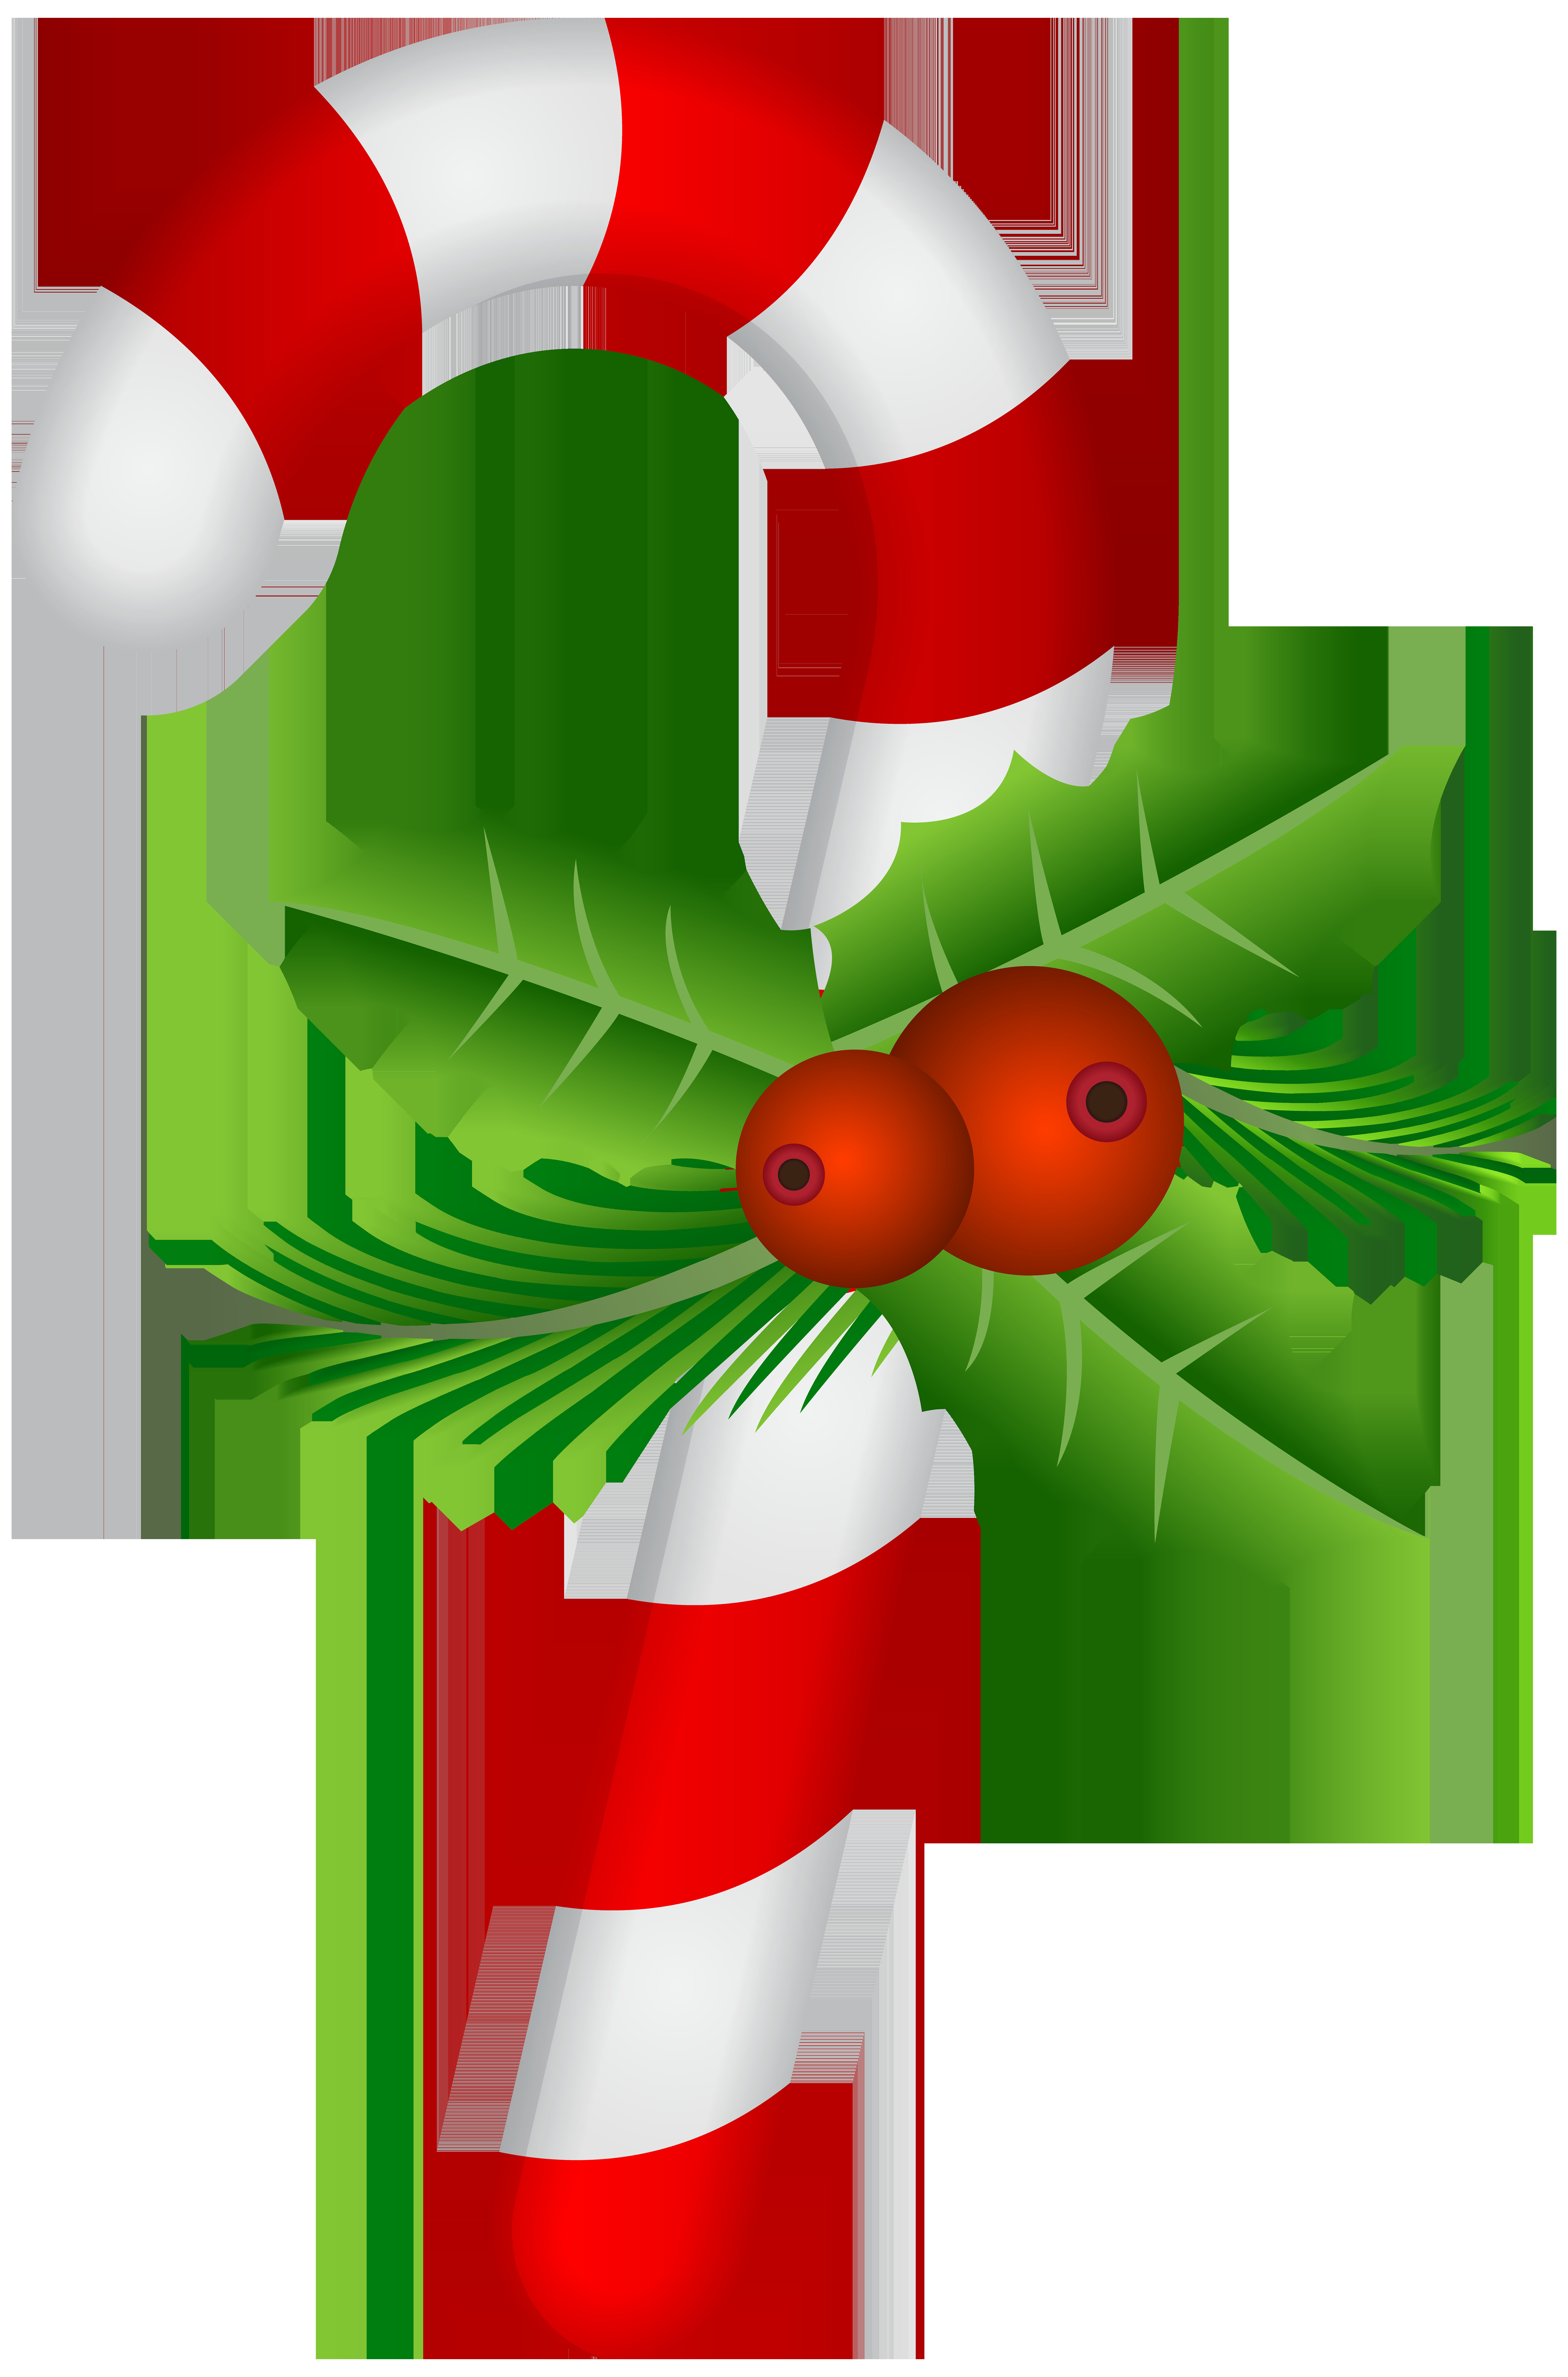 Christmas Candy Canes  Pin by Courtney Patterson on DESSETS CLIP ART